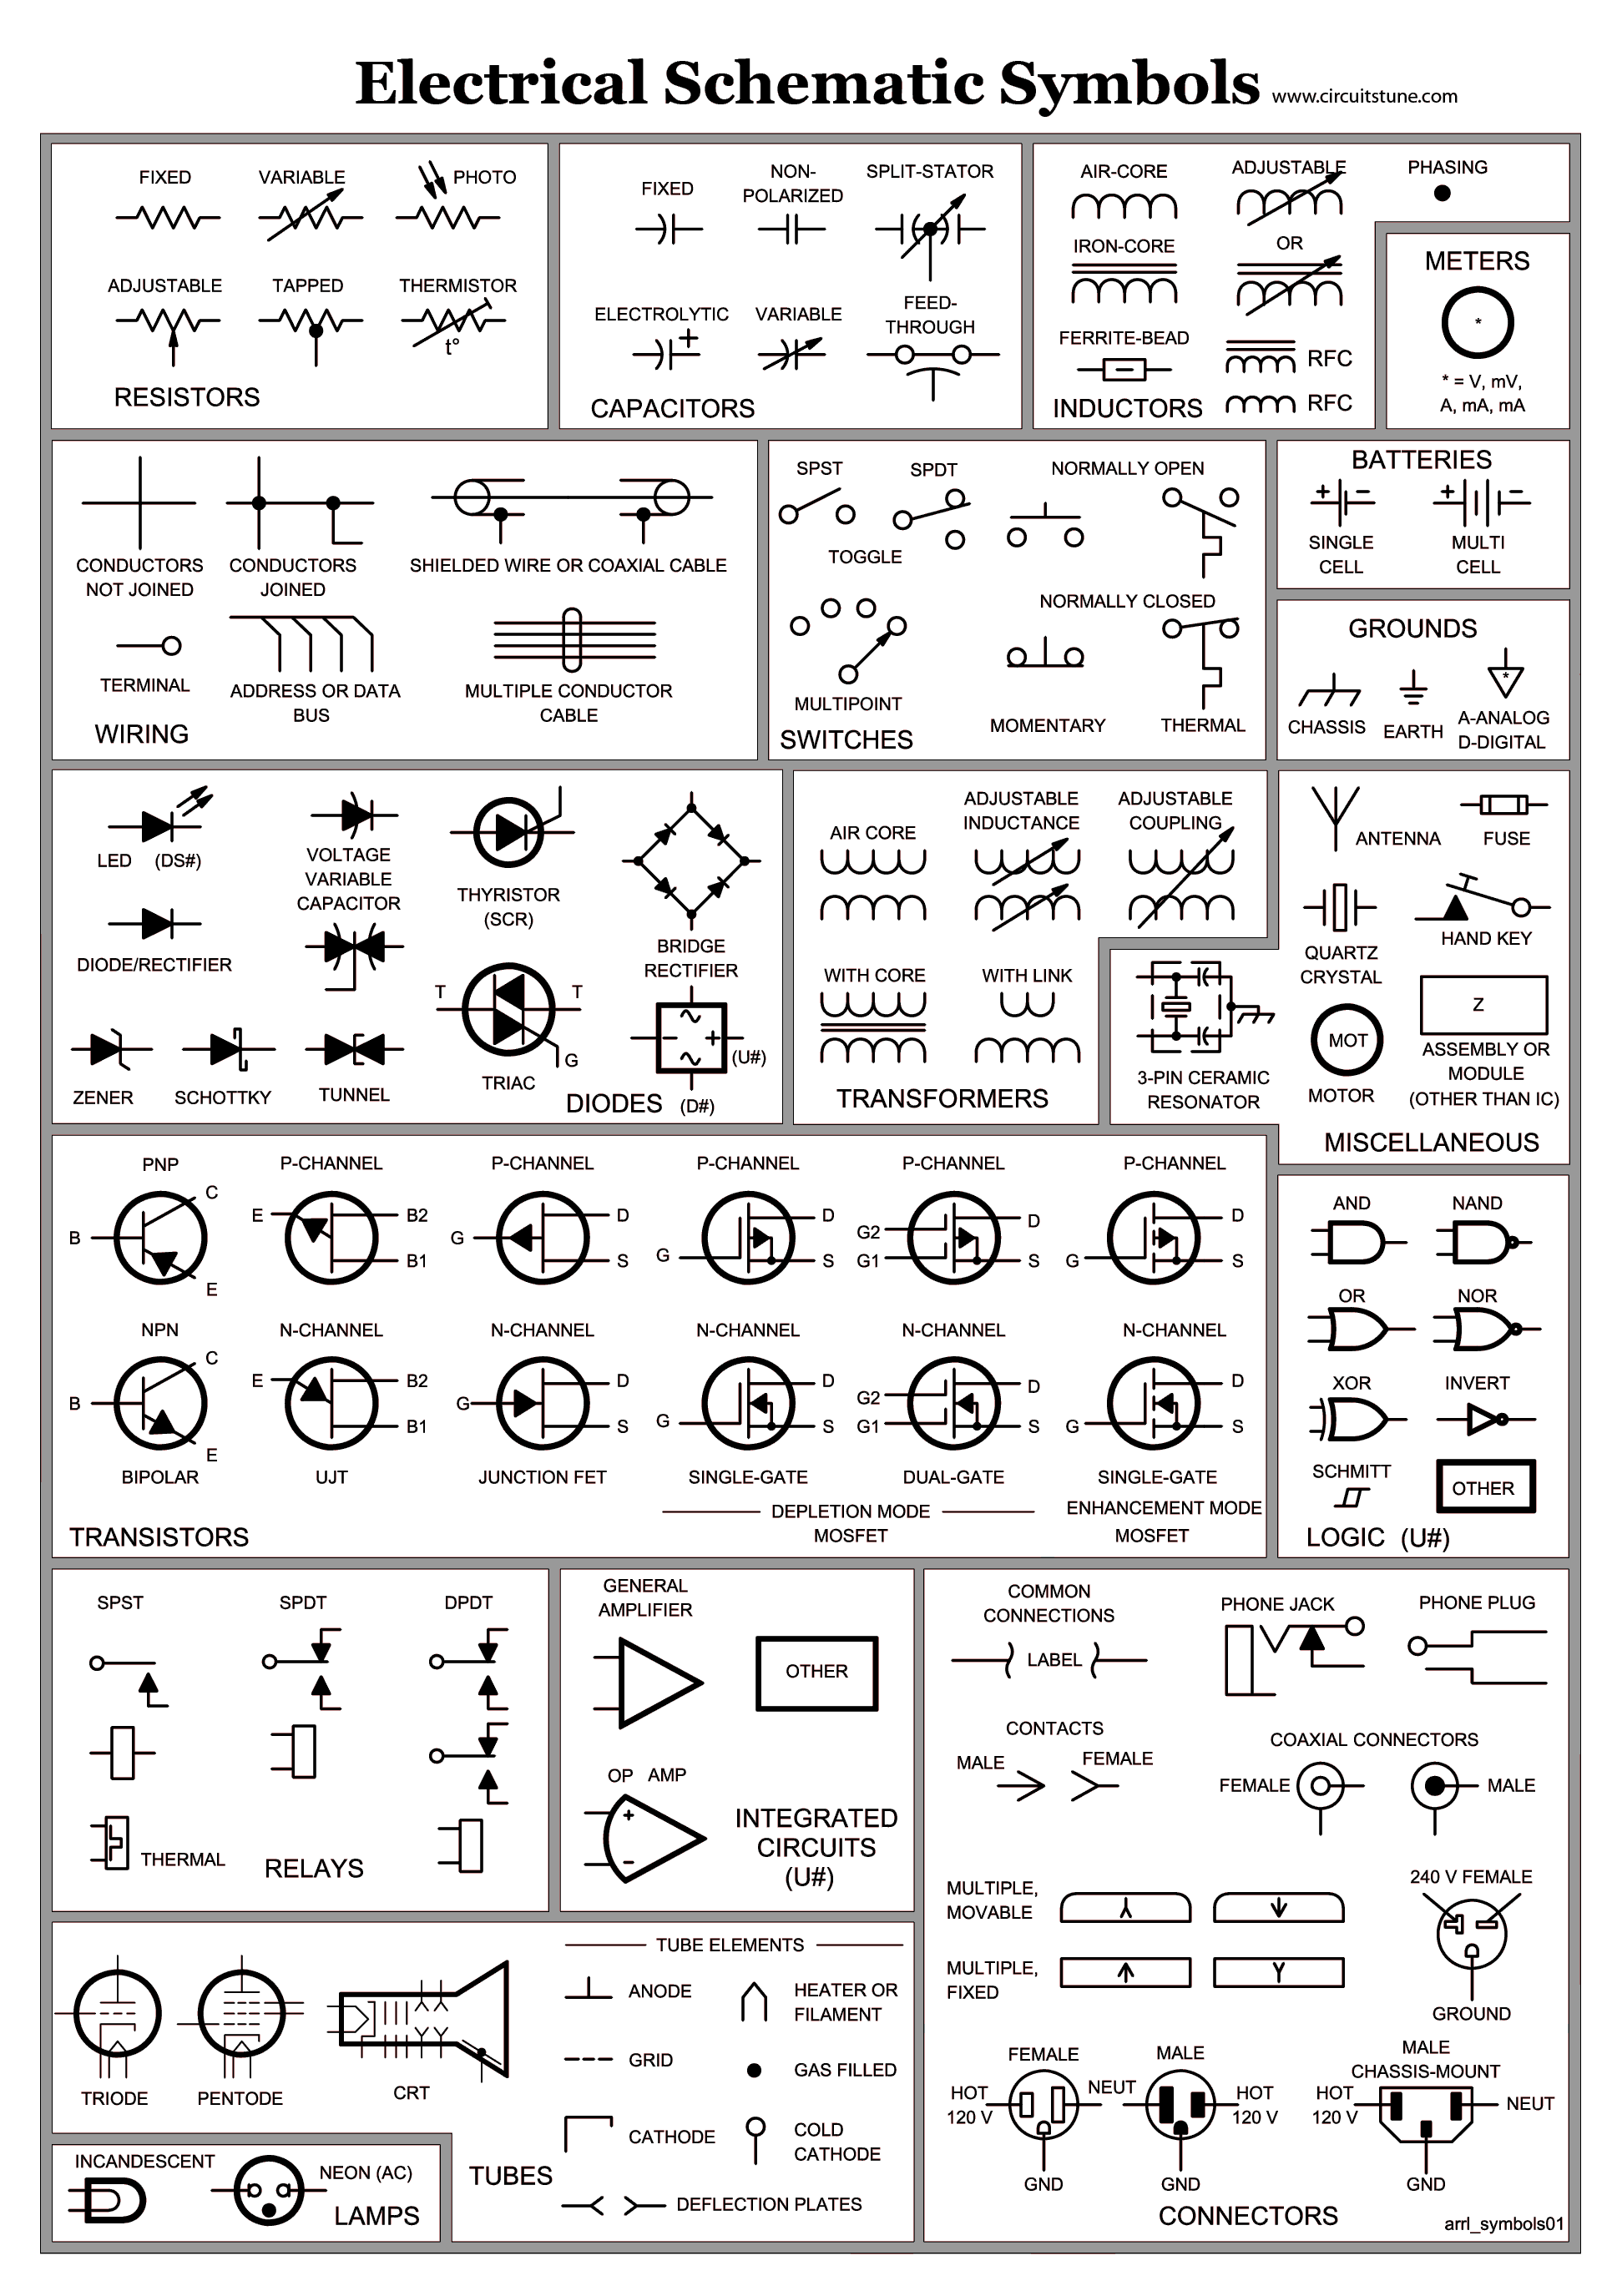 a65d176364692d2ebe913b58a654cfc3 electrical schematic symbols wire diagram symbols automotive wiring diagram symbols at couponss.co